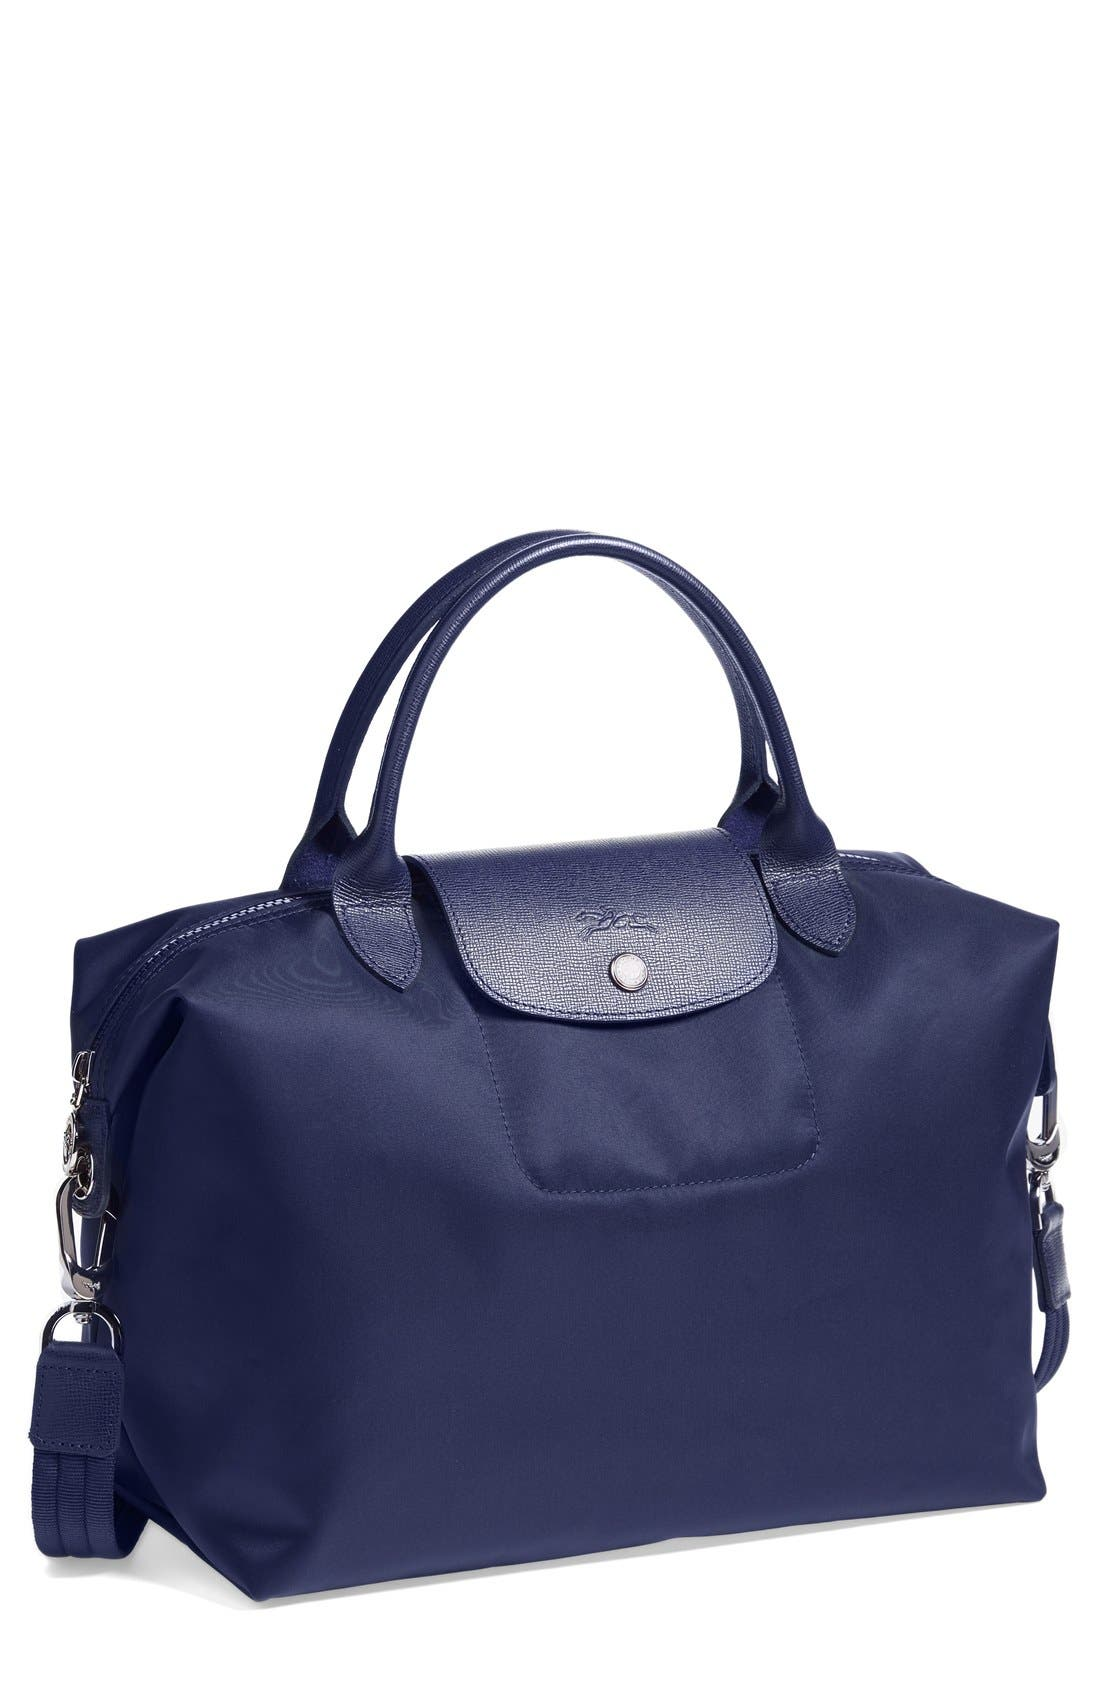 Alternate Image 1 Selected - Longchamp 'Medium Le Pliage Neo' Nylon Tote